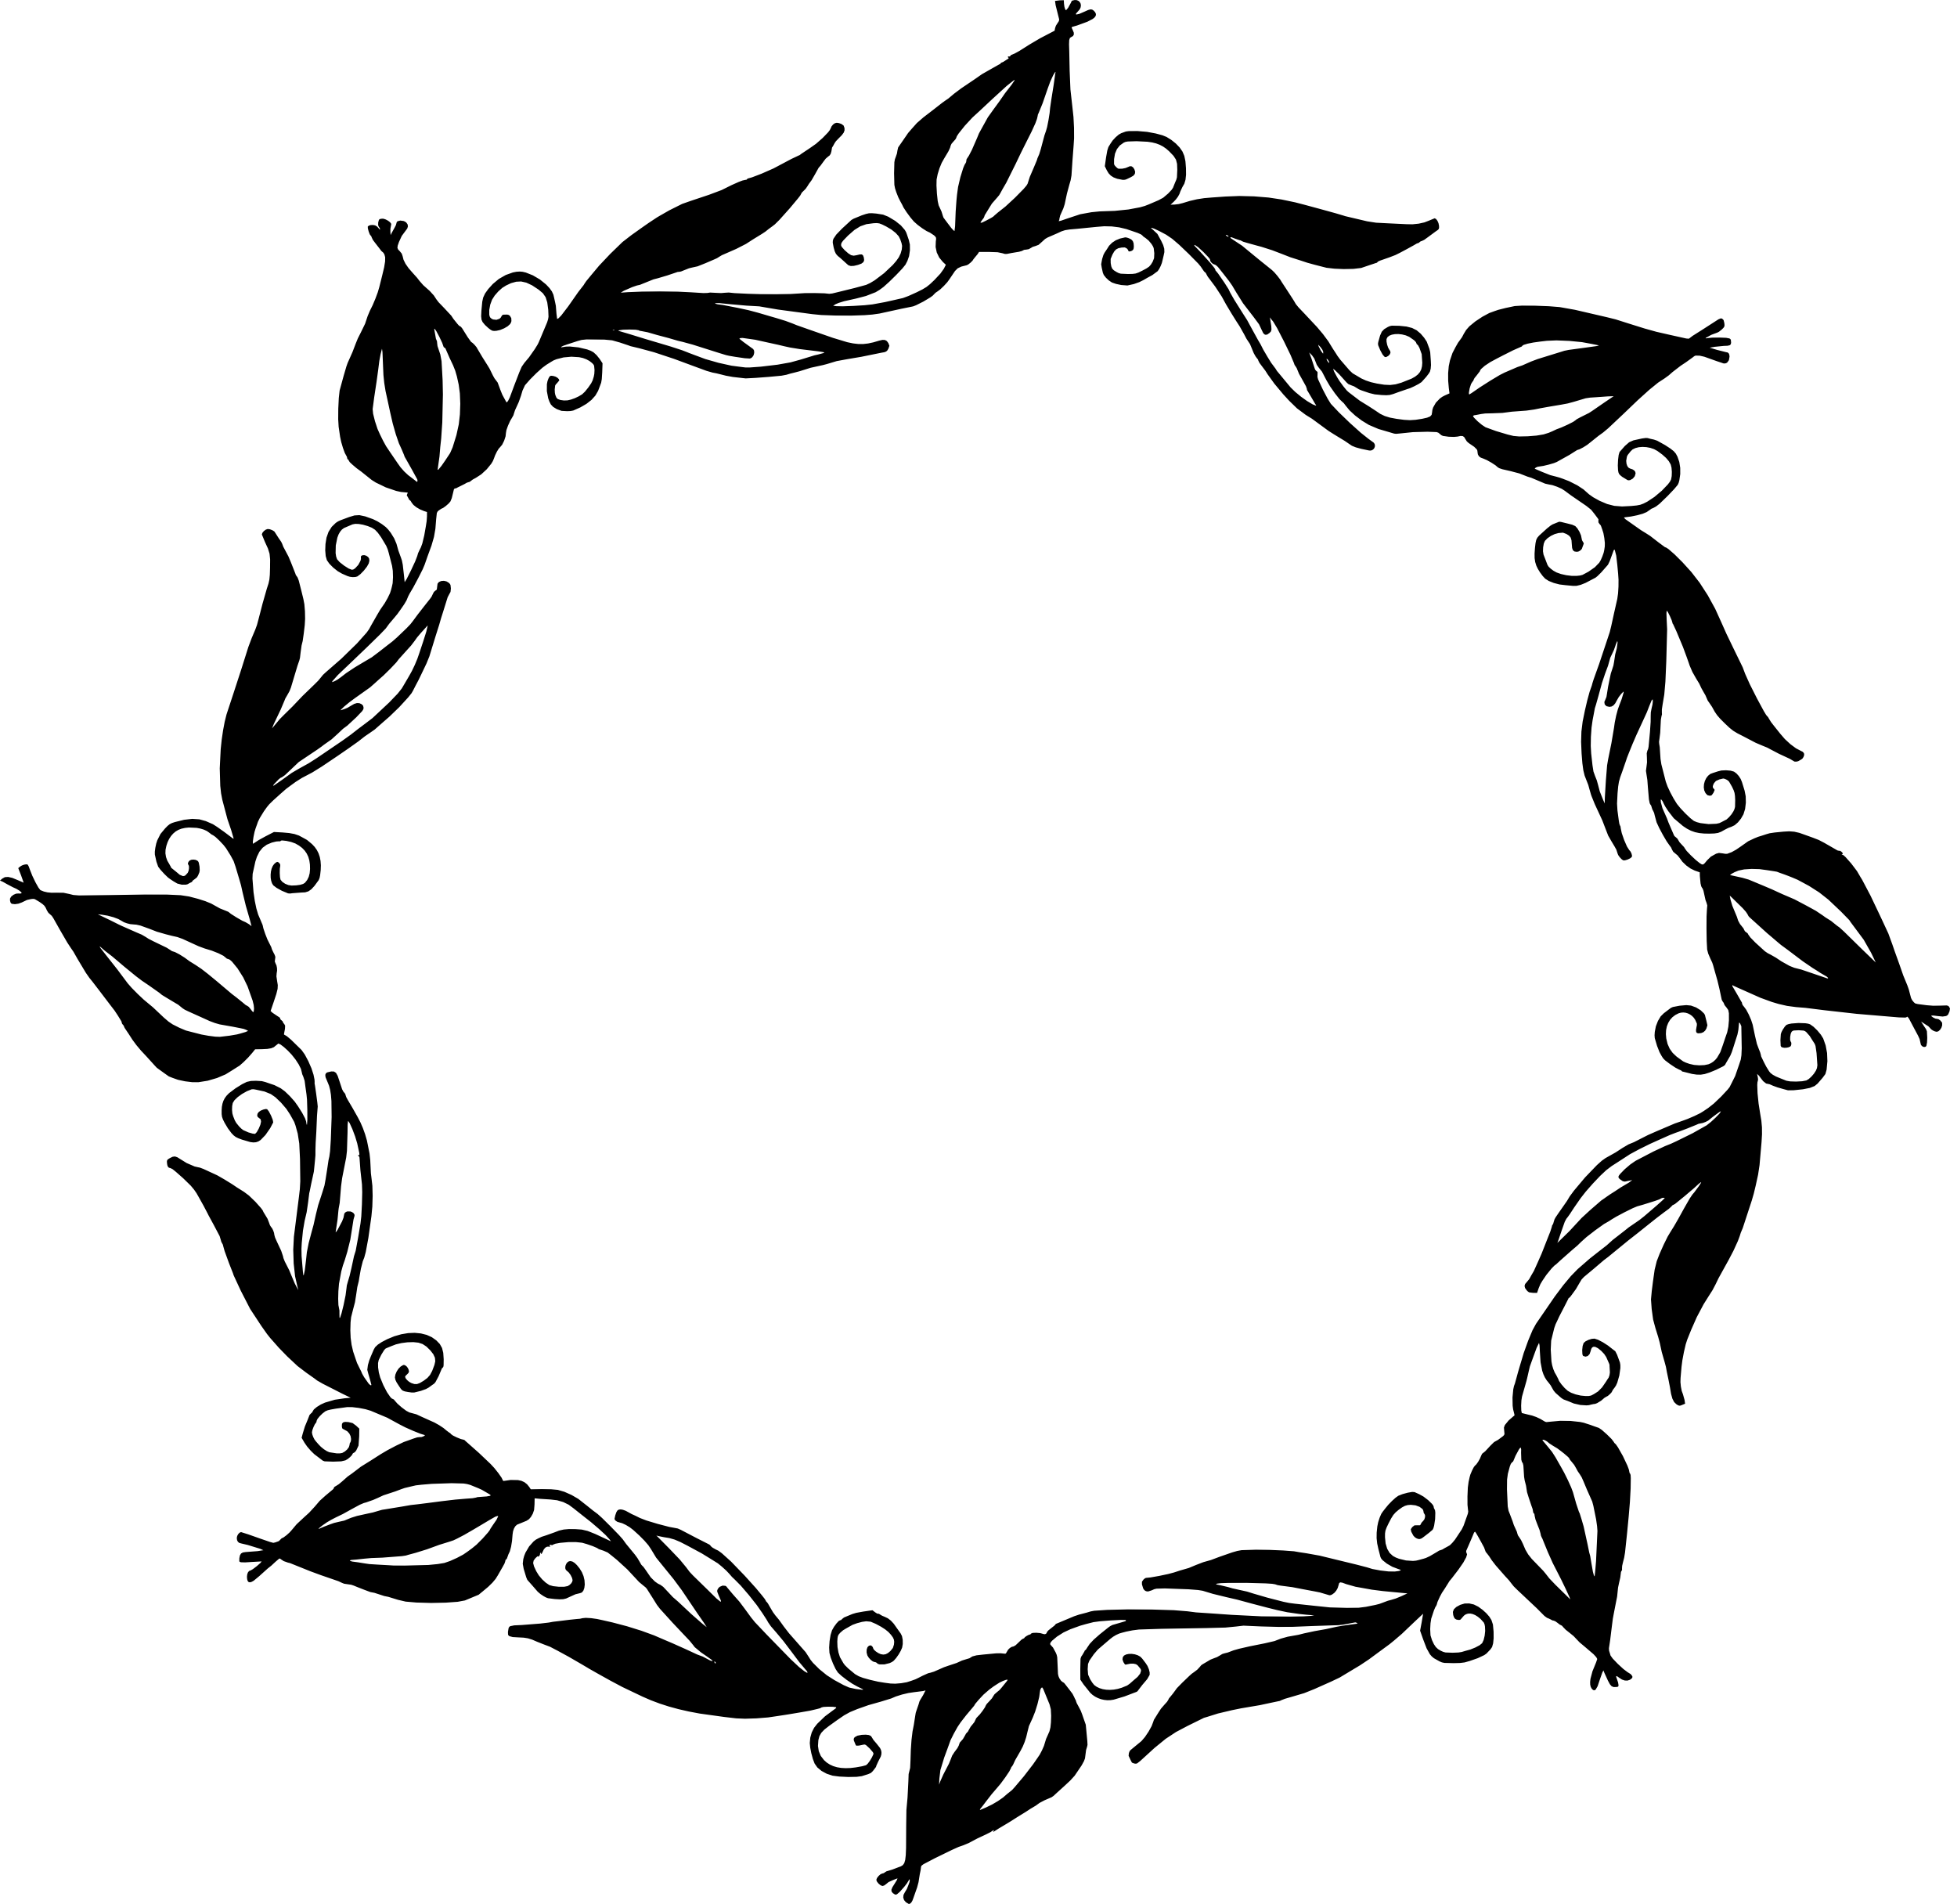 Floral frame png. Circle vector transparent